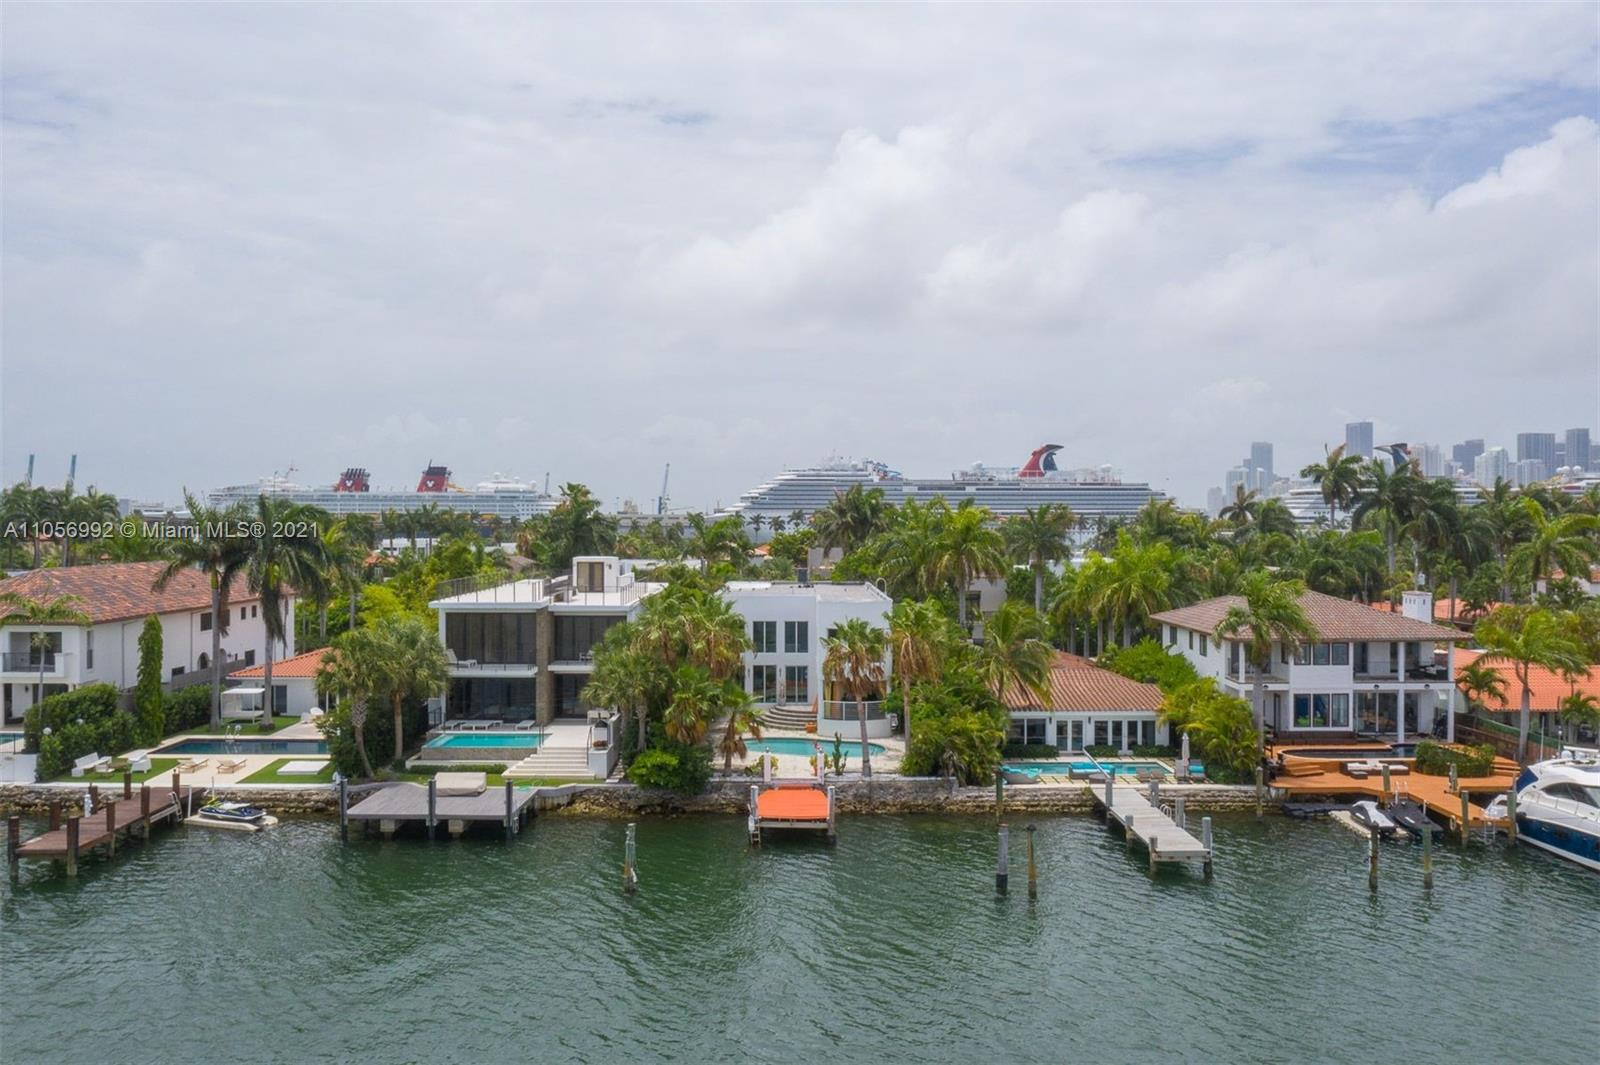 251 N Coconut Ln  For Sale A11056992, FL